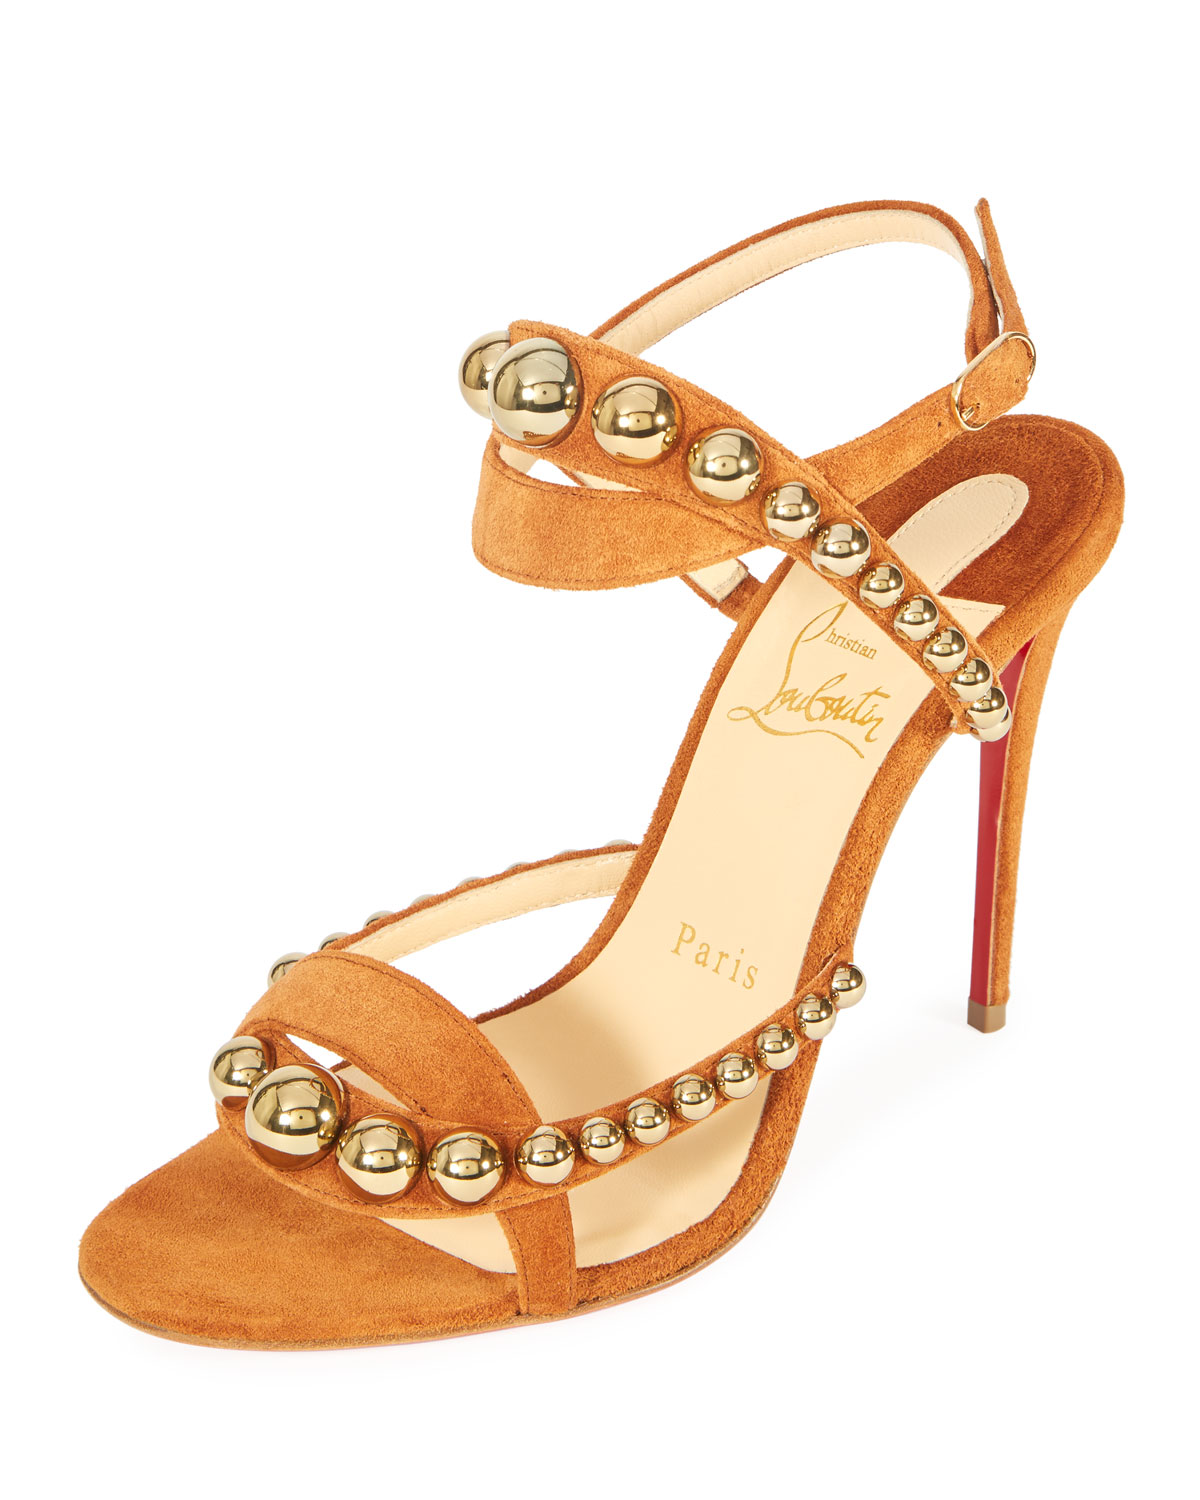 09edfad4e957 Christian Louboutin Galleria 100mm Suede Red Sole Sandal